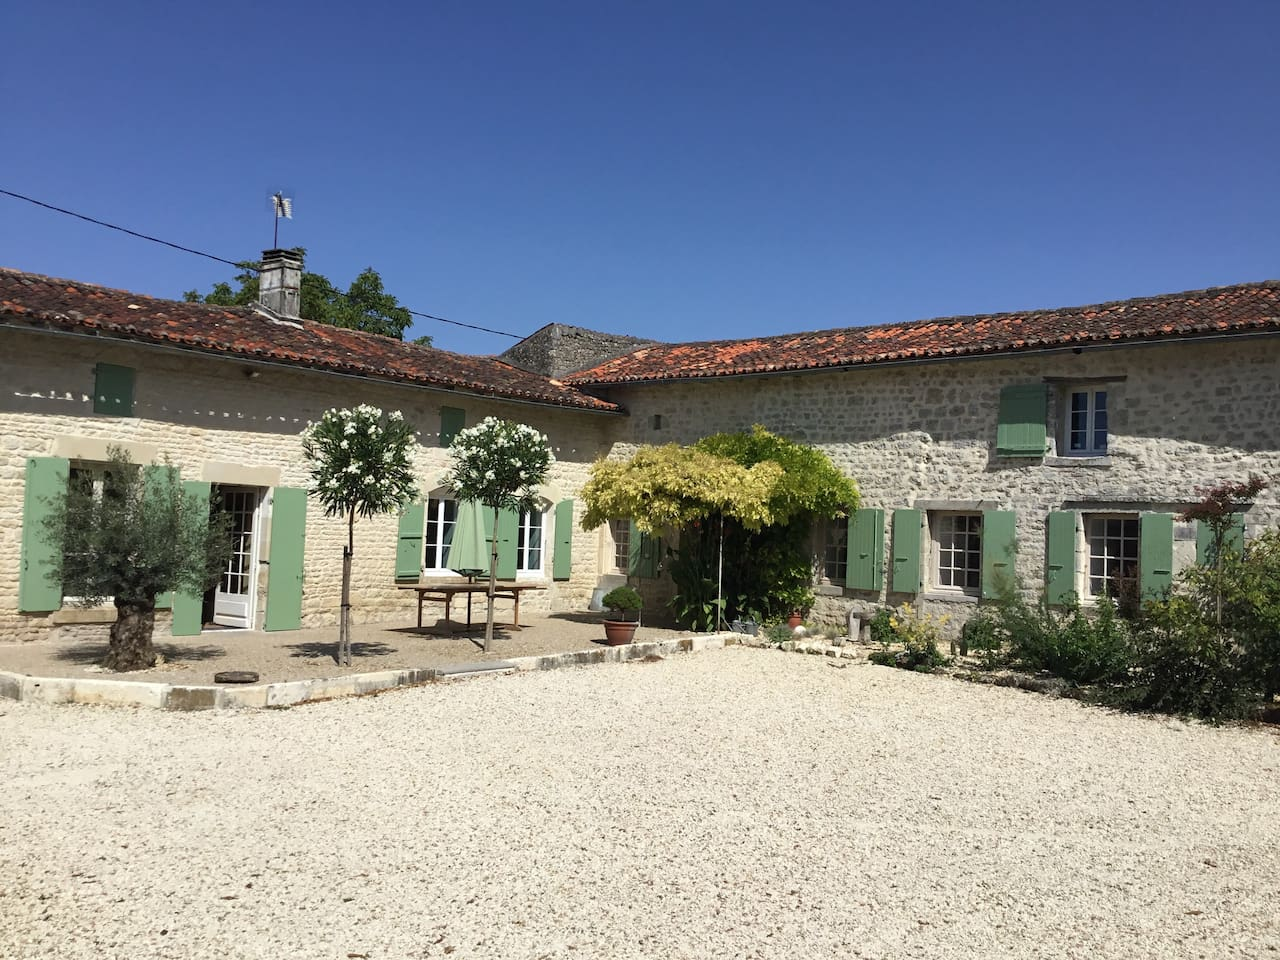 1700's Restored Farmhouse with large gated courtyard and substantial gardens